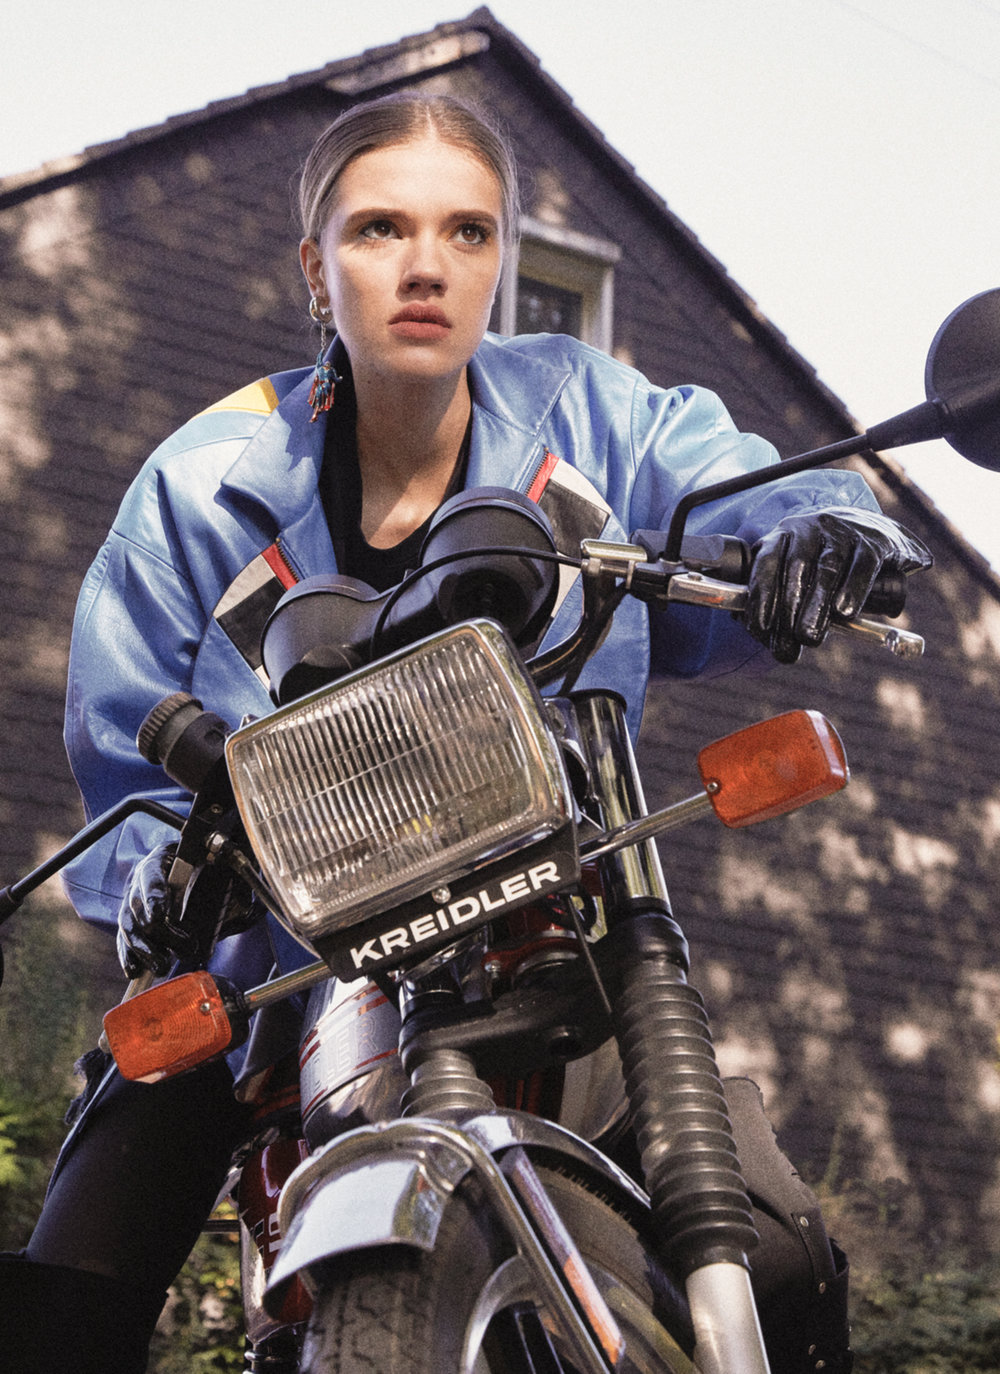 Suburban Girl 91   Published on 06 November 2018   Photographer  Uwe Konrad @uwe_m._konrad  Stylist  Laila Raoui @elvistheking3  Make up  Janine Burg @Janine_burg  Assistant  Kristina Gutmann @kri2py  Model  Hannah Siebert at Model Management Hamburg @hannah.siebert  Thanks  Guido for the Moped